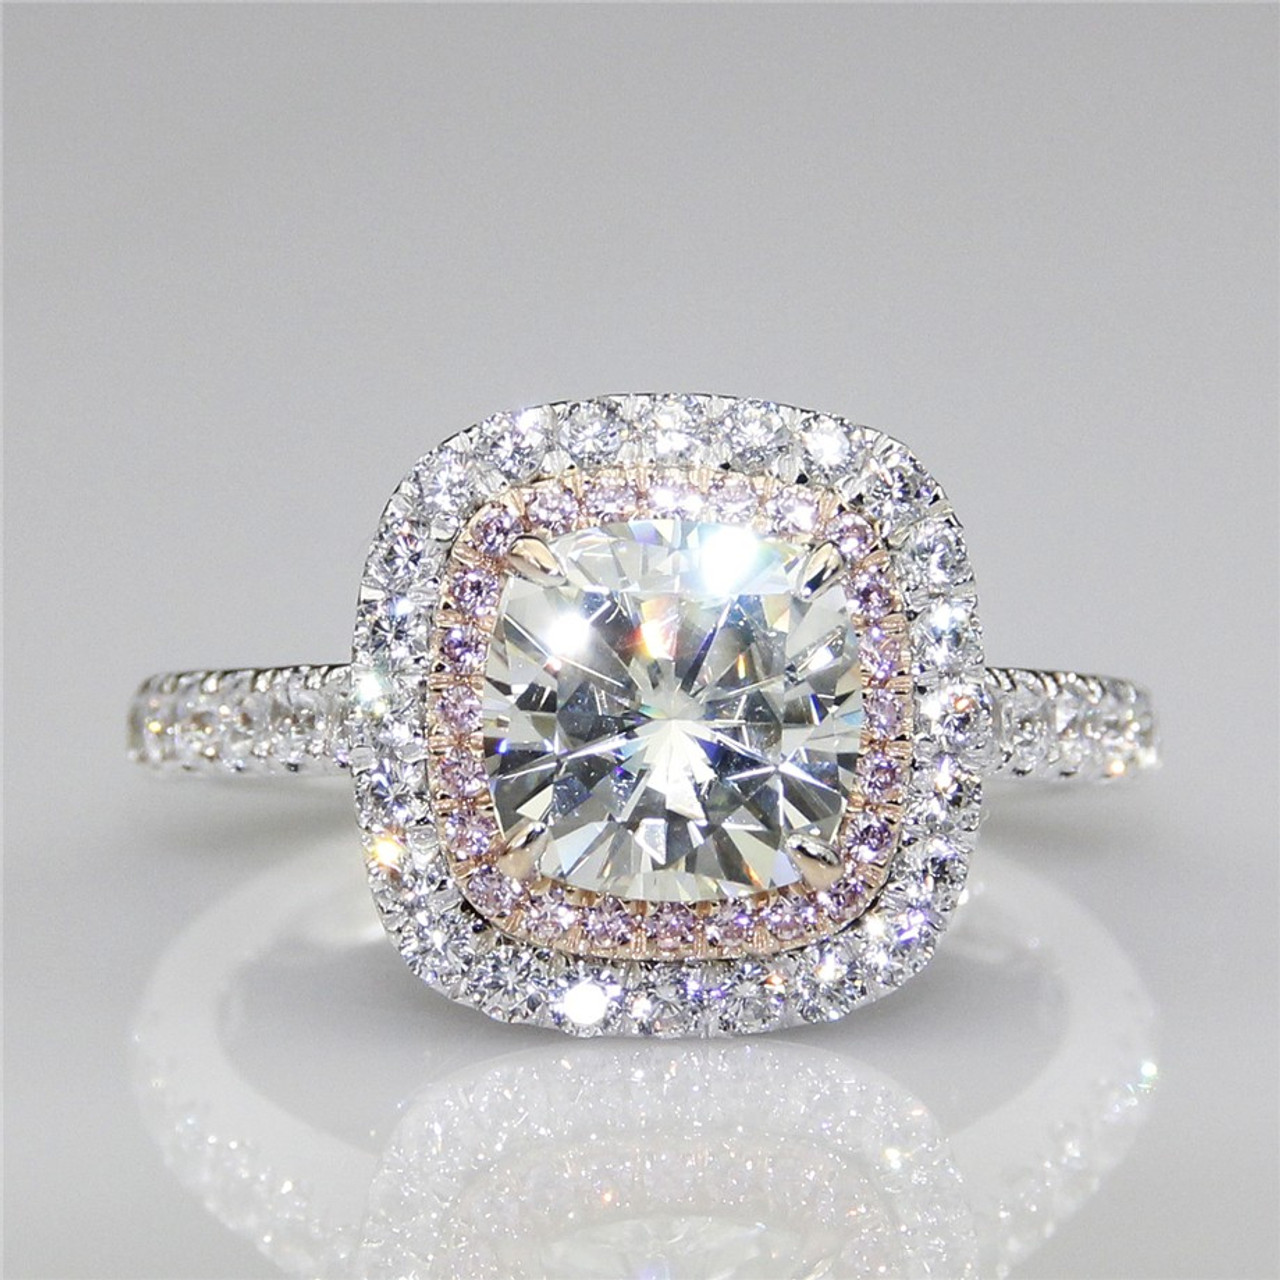 pave cushion gold pre brilliant v prong in a engagement halo diamond split rings wb enr ring platinum cathedral set white